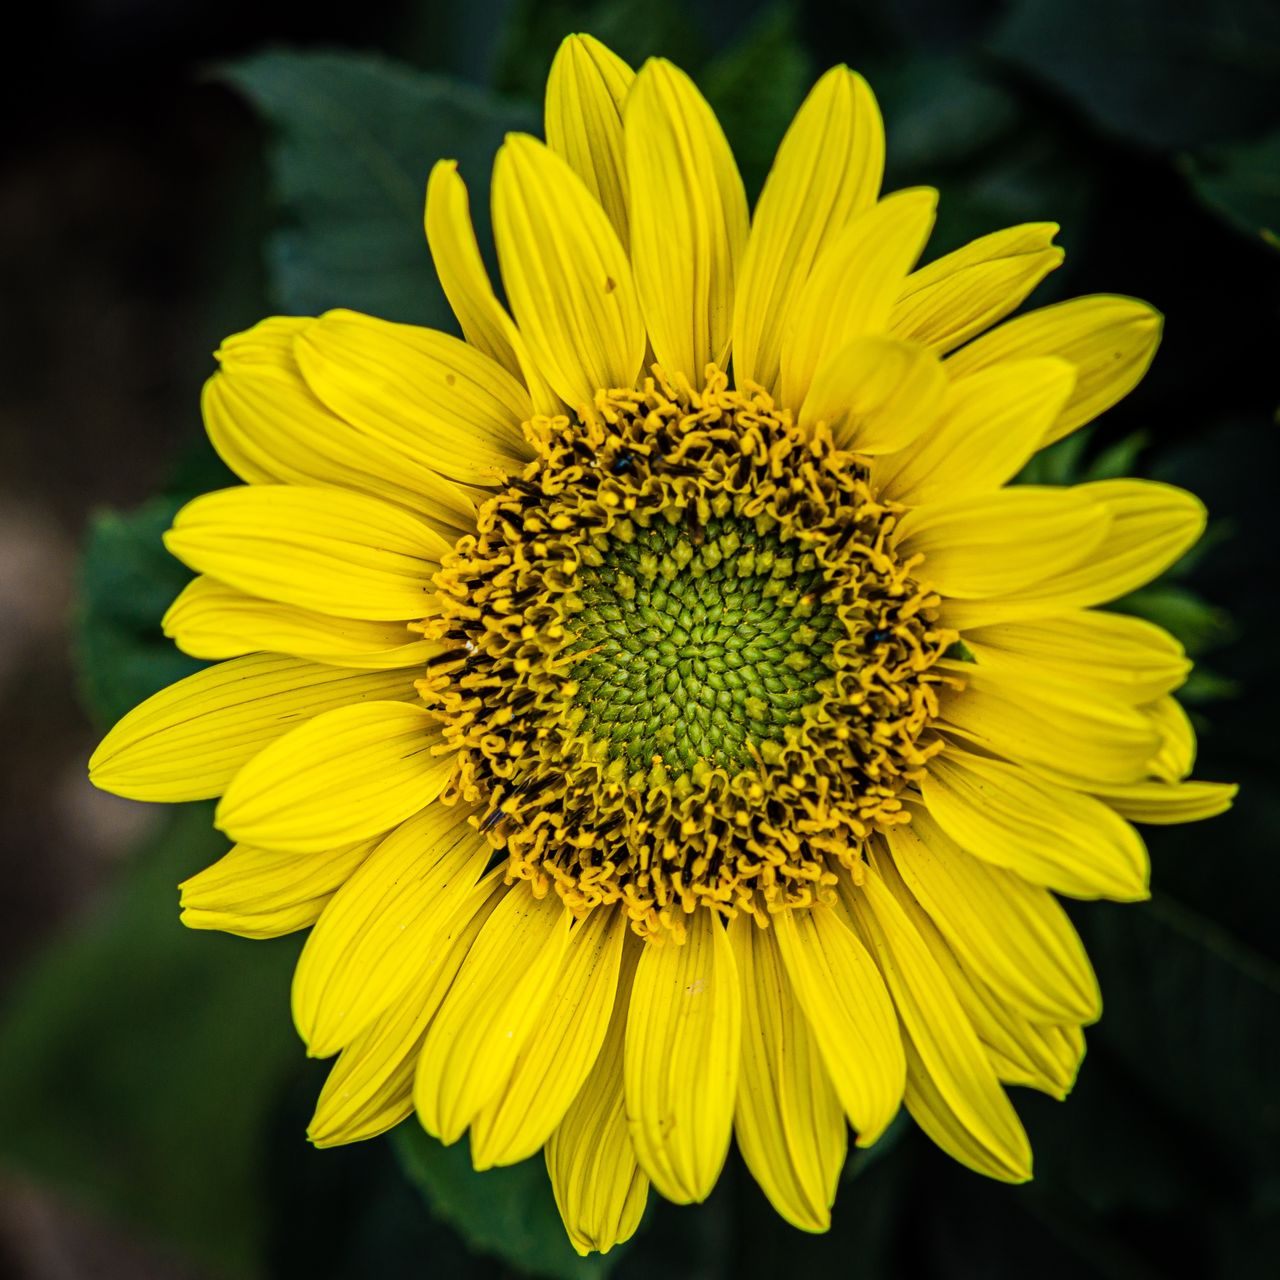 flower, flowering plant, yellow, flower head, fragility, petal, freshness, vulnerability, inflorescence, beauty in nature, plant, close-up, growth, focus on foreground, pollen, nature, sunflower, no people, day, outdoors